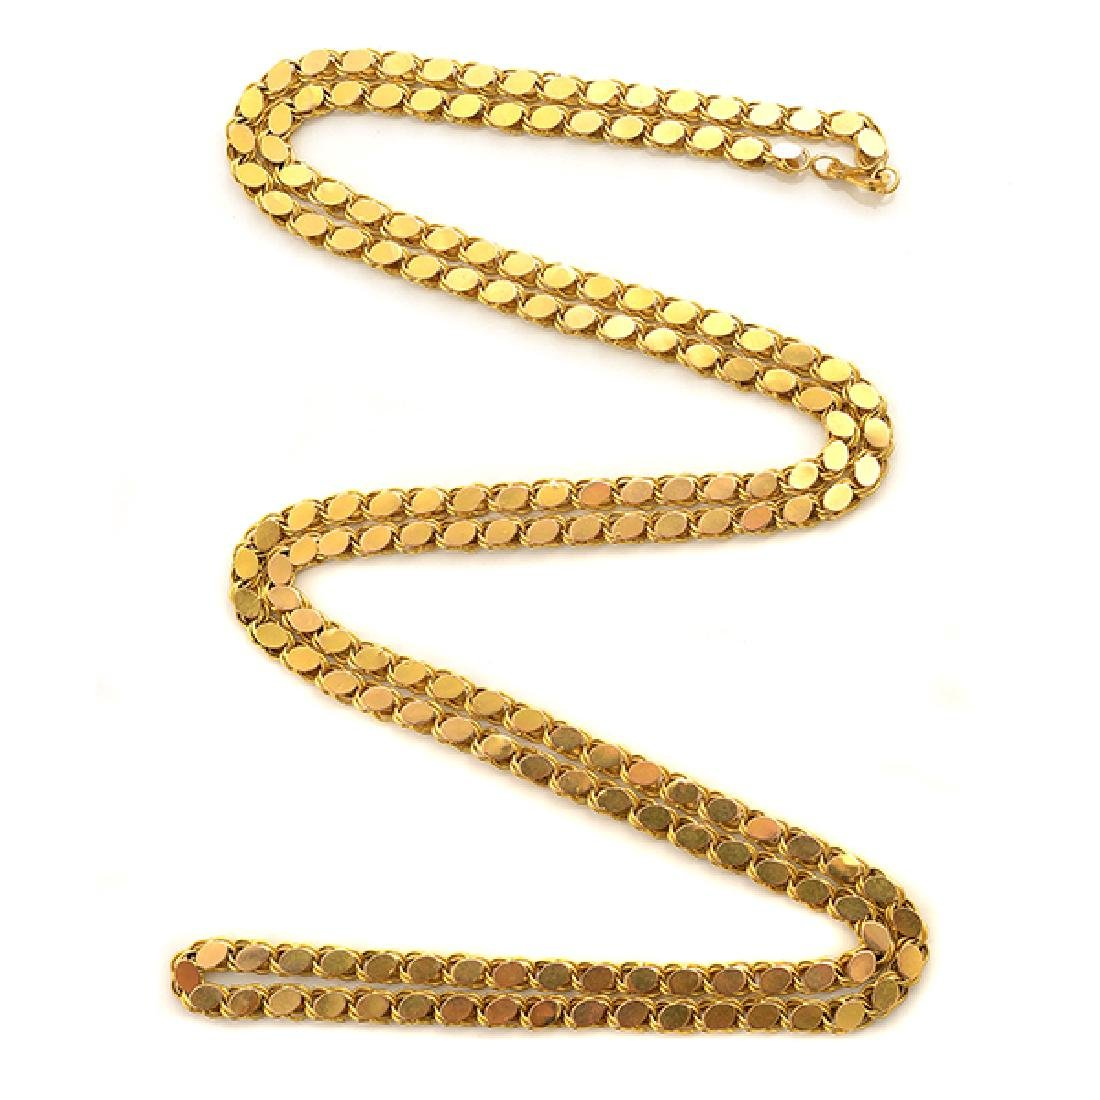 18k Yellow Gold Long Chain Necklace.